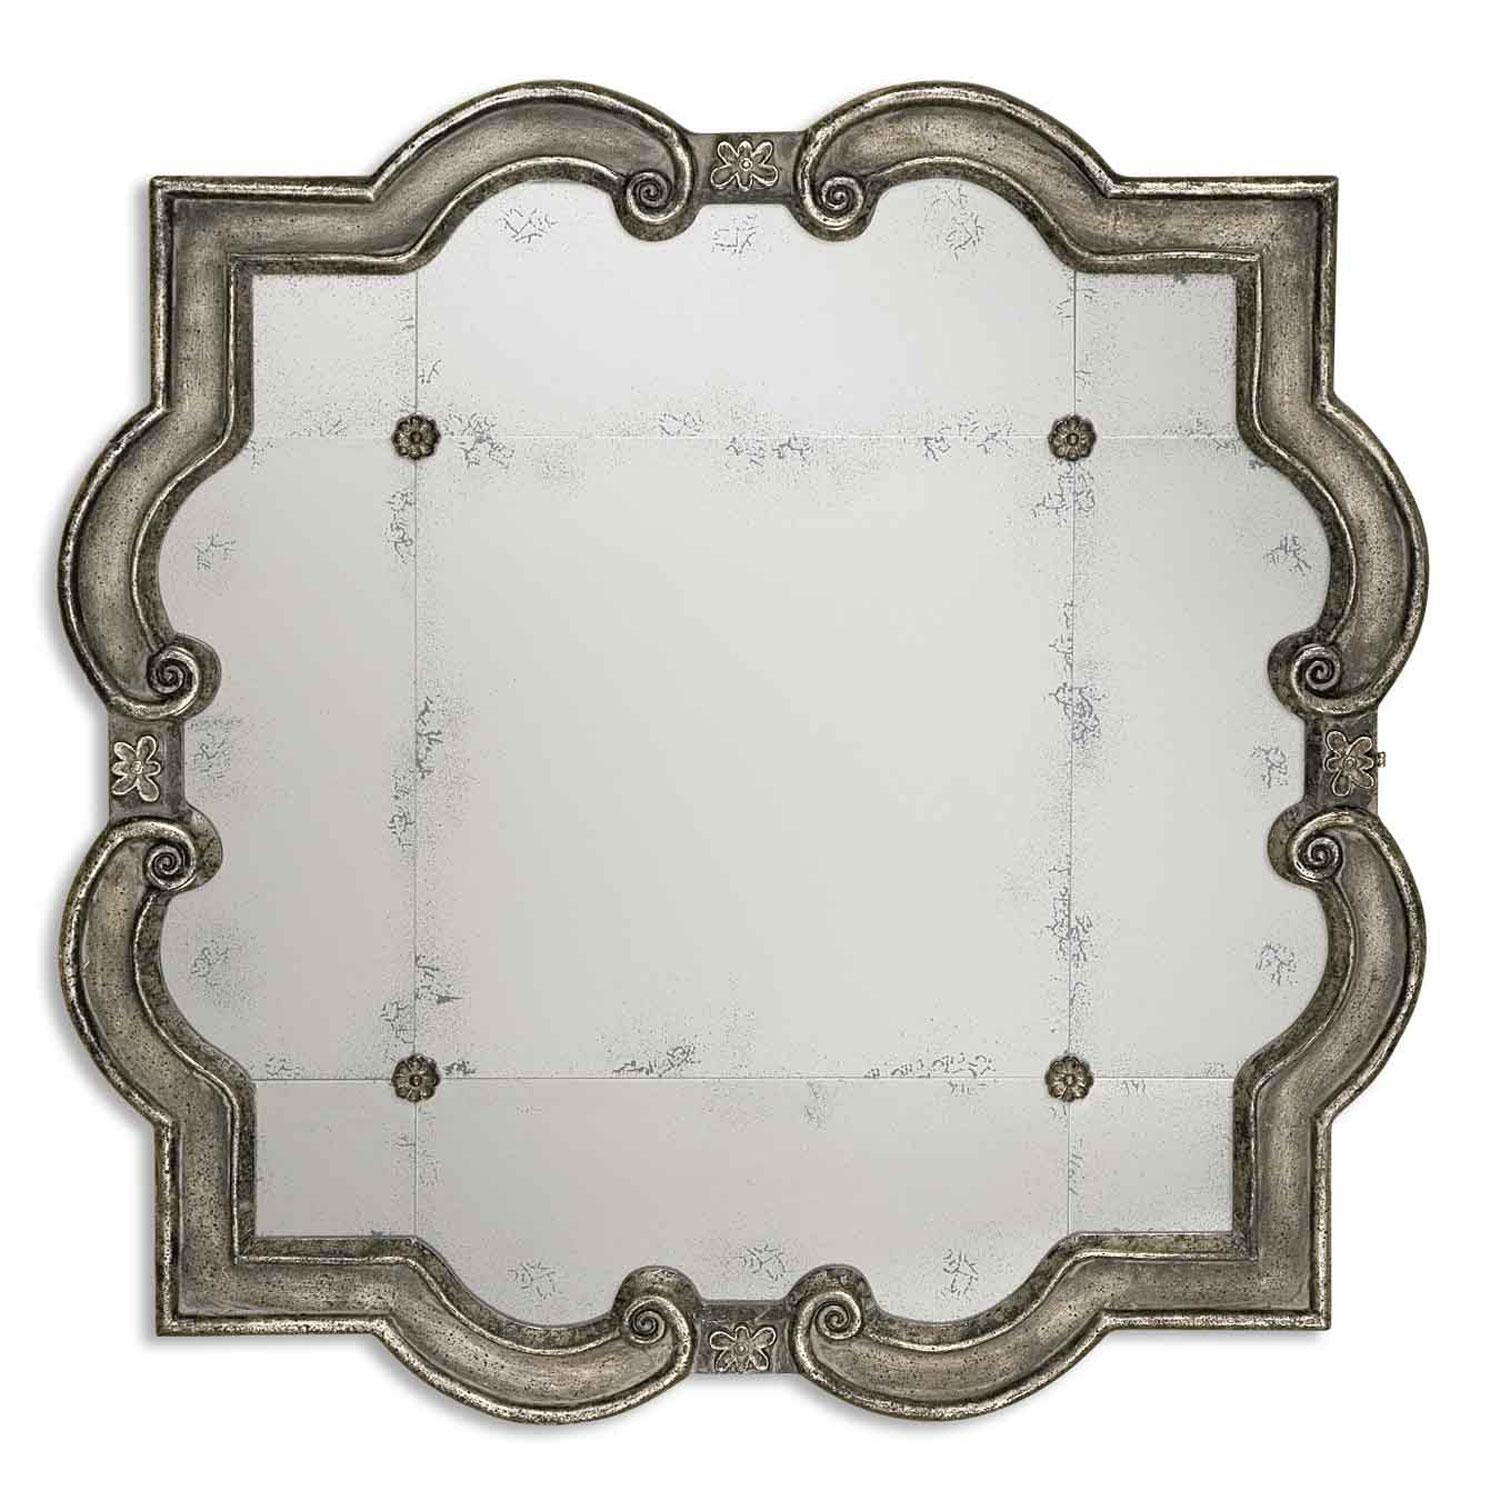 Old World Mirrors | Bellacor For Ornate Bathroom Mirror (Image 13 of 20)